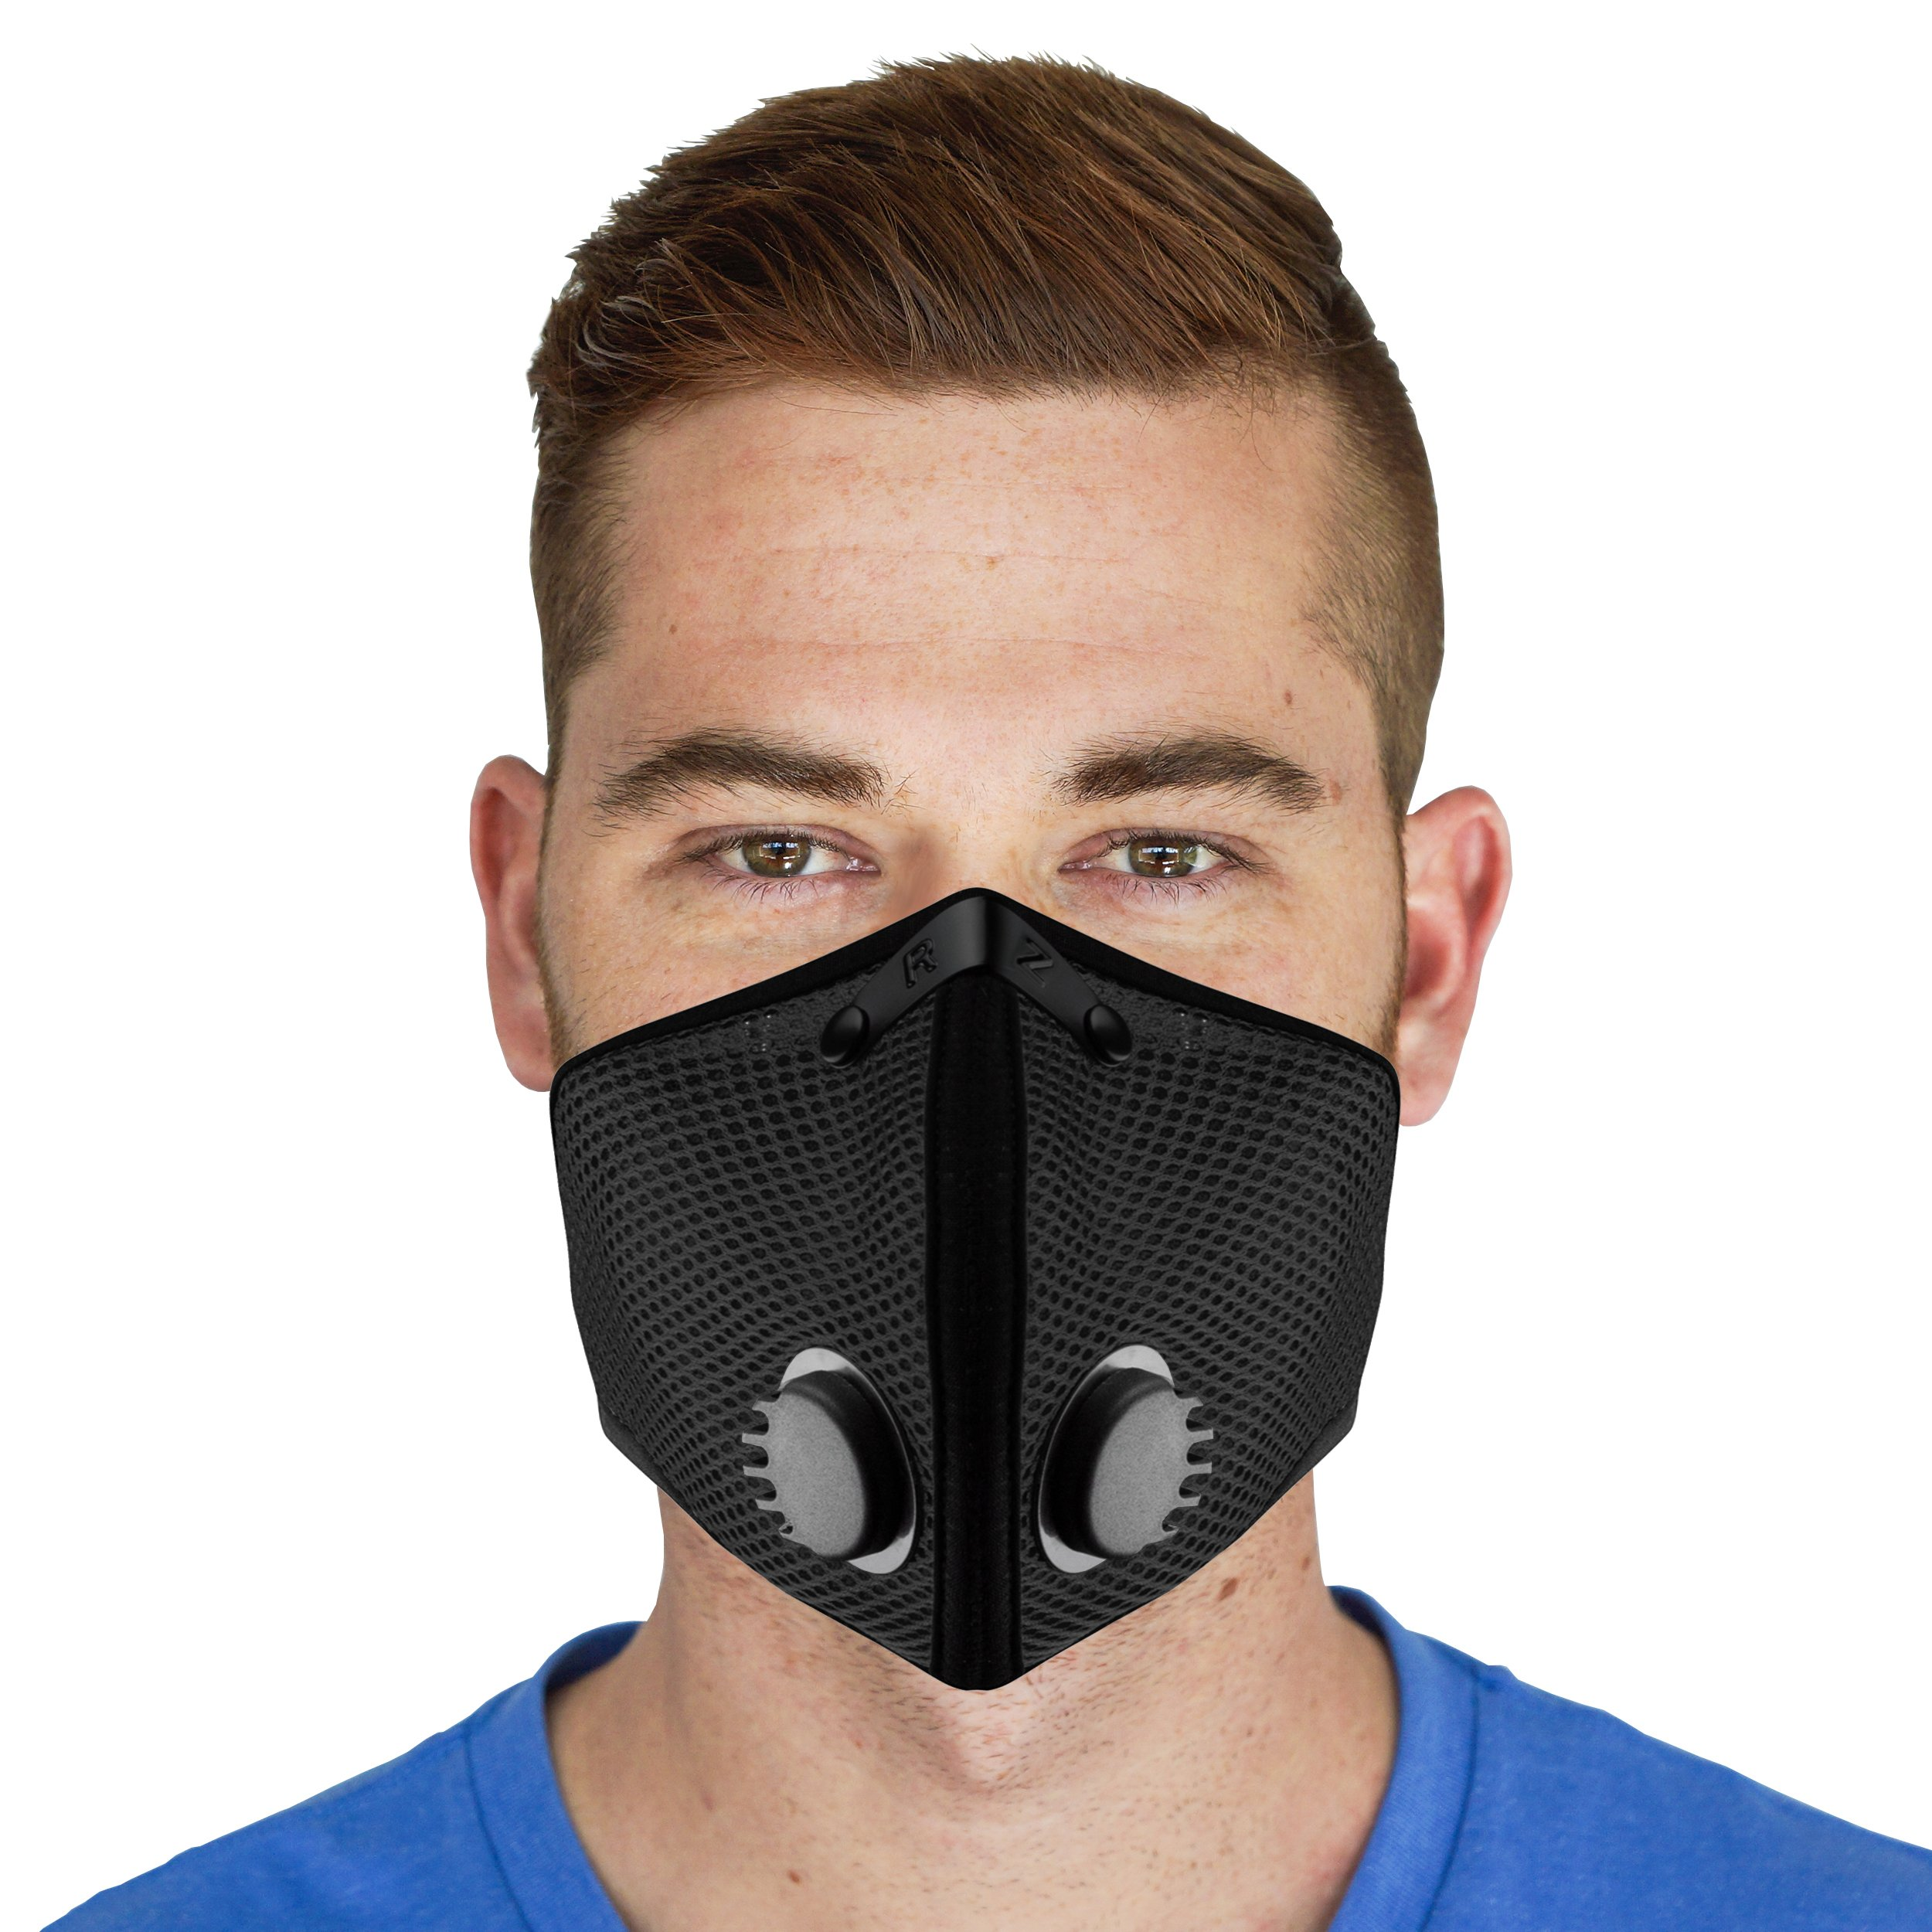 RZ M2.5 Dual Strap Mesh Dust/Air Filtration Mask Bonus Pack Mask Washable New Adjustable Straps Allergy/Asthma/Construction/Woodworking/Pollution/Adult (Large (125lbs - 215lbs), Black) by RZ Mask (Image #6)